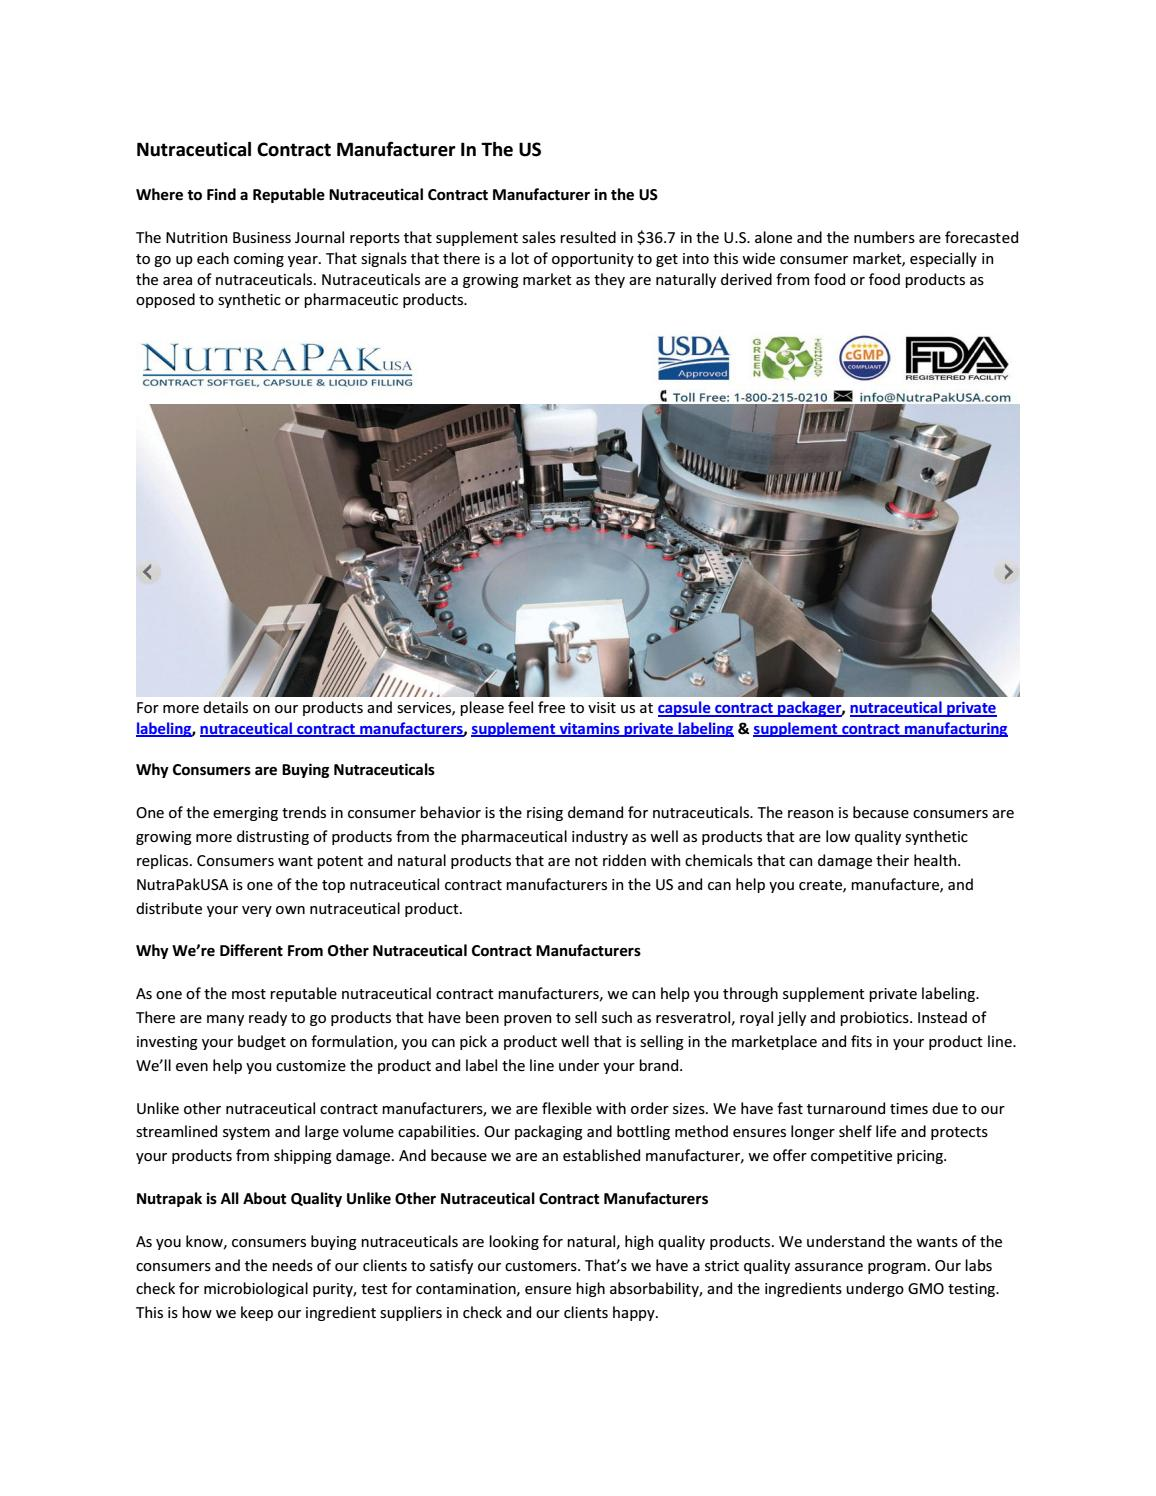 Nutraceutical contract manufacturer in the us by nutrapakusa - issuu